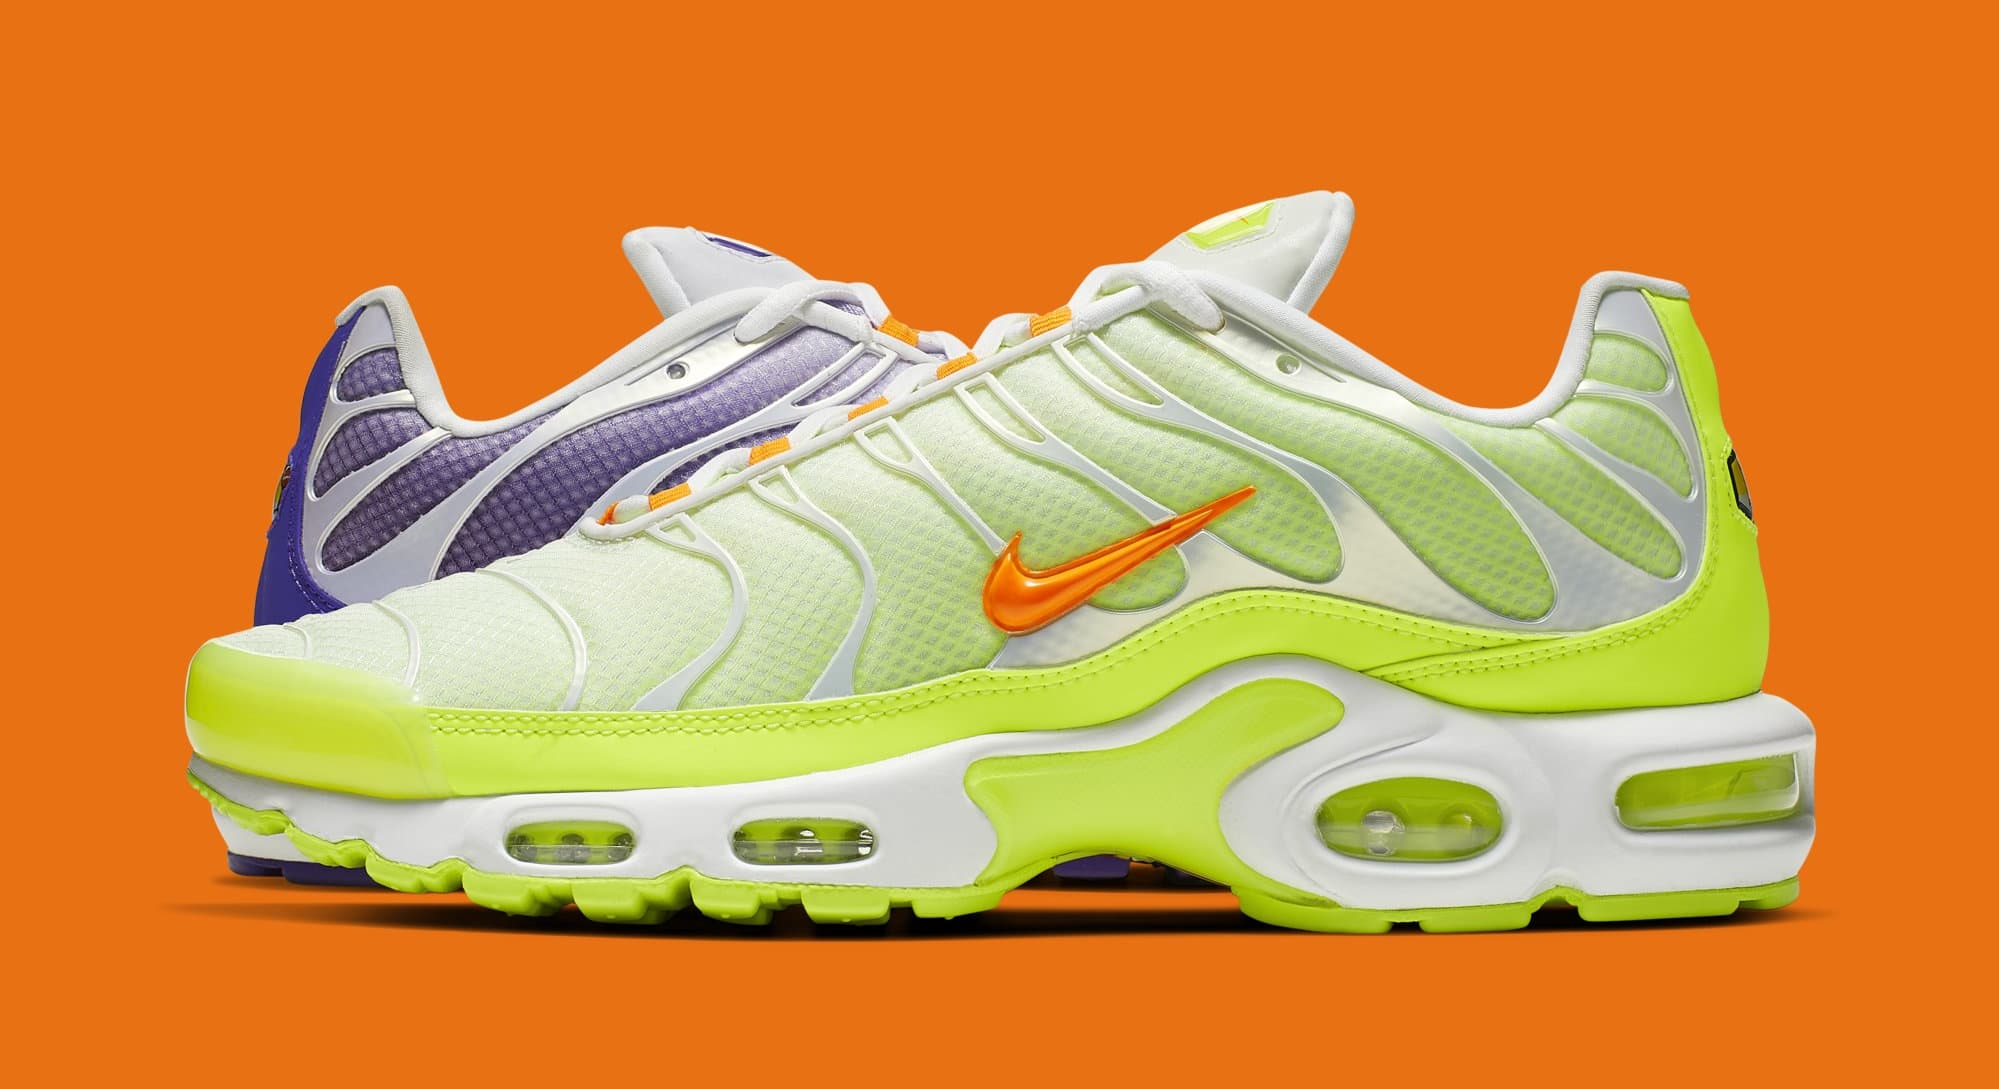 Nike Air Max Plus 'Color Flip/White' CI5925-531 (Lateral)